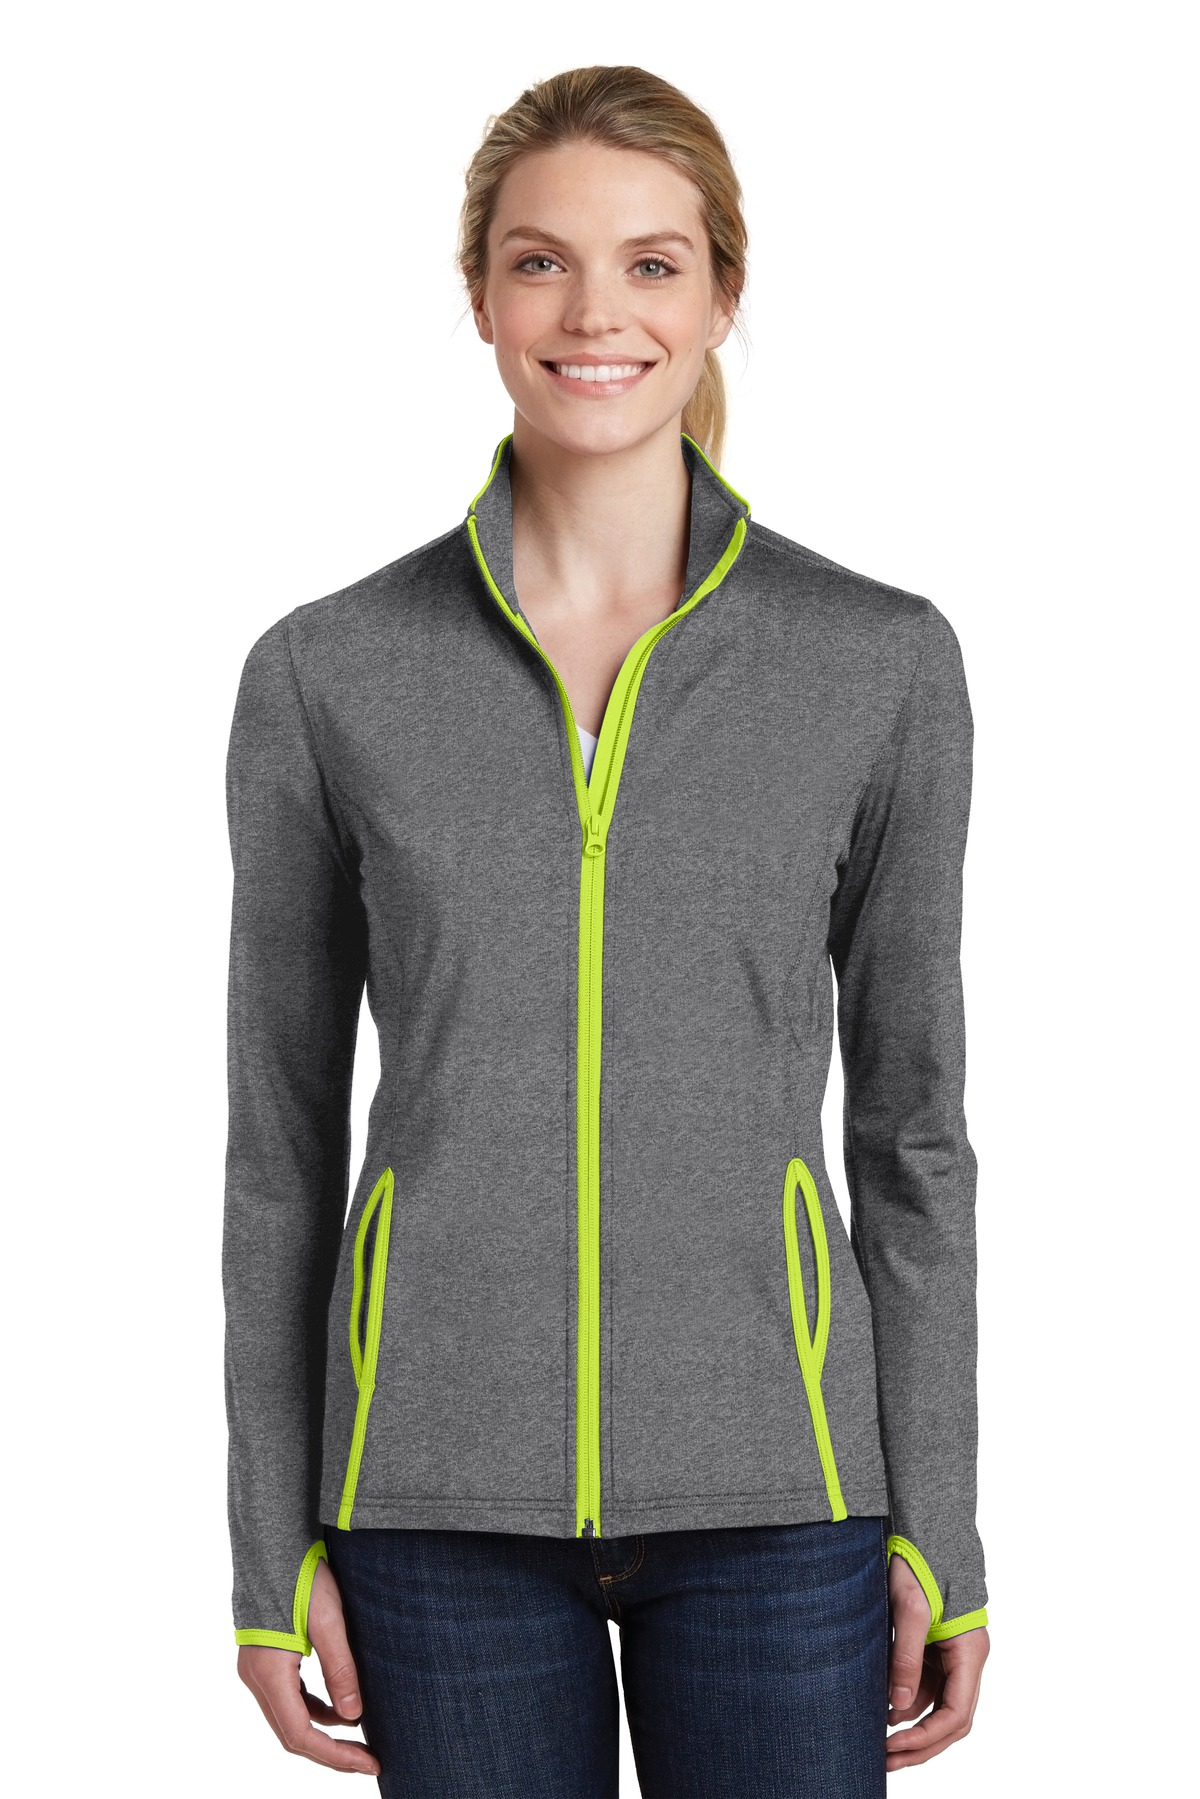 Sport-Tek ®  Ladies Sport-Wick ®  Stretch Contrast Full-Zip Jacket.  LST853 - Charcoal Grey Heather/ Charge Green